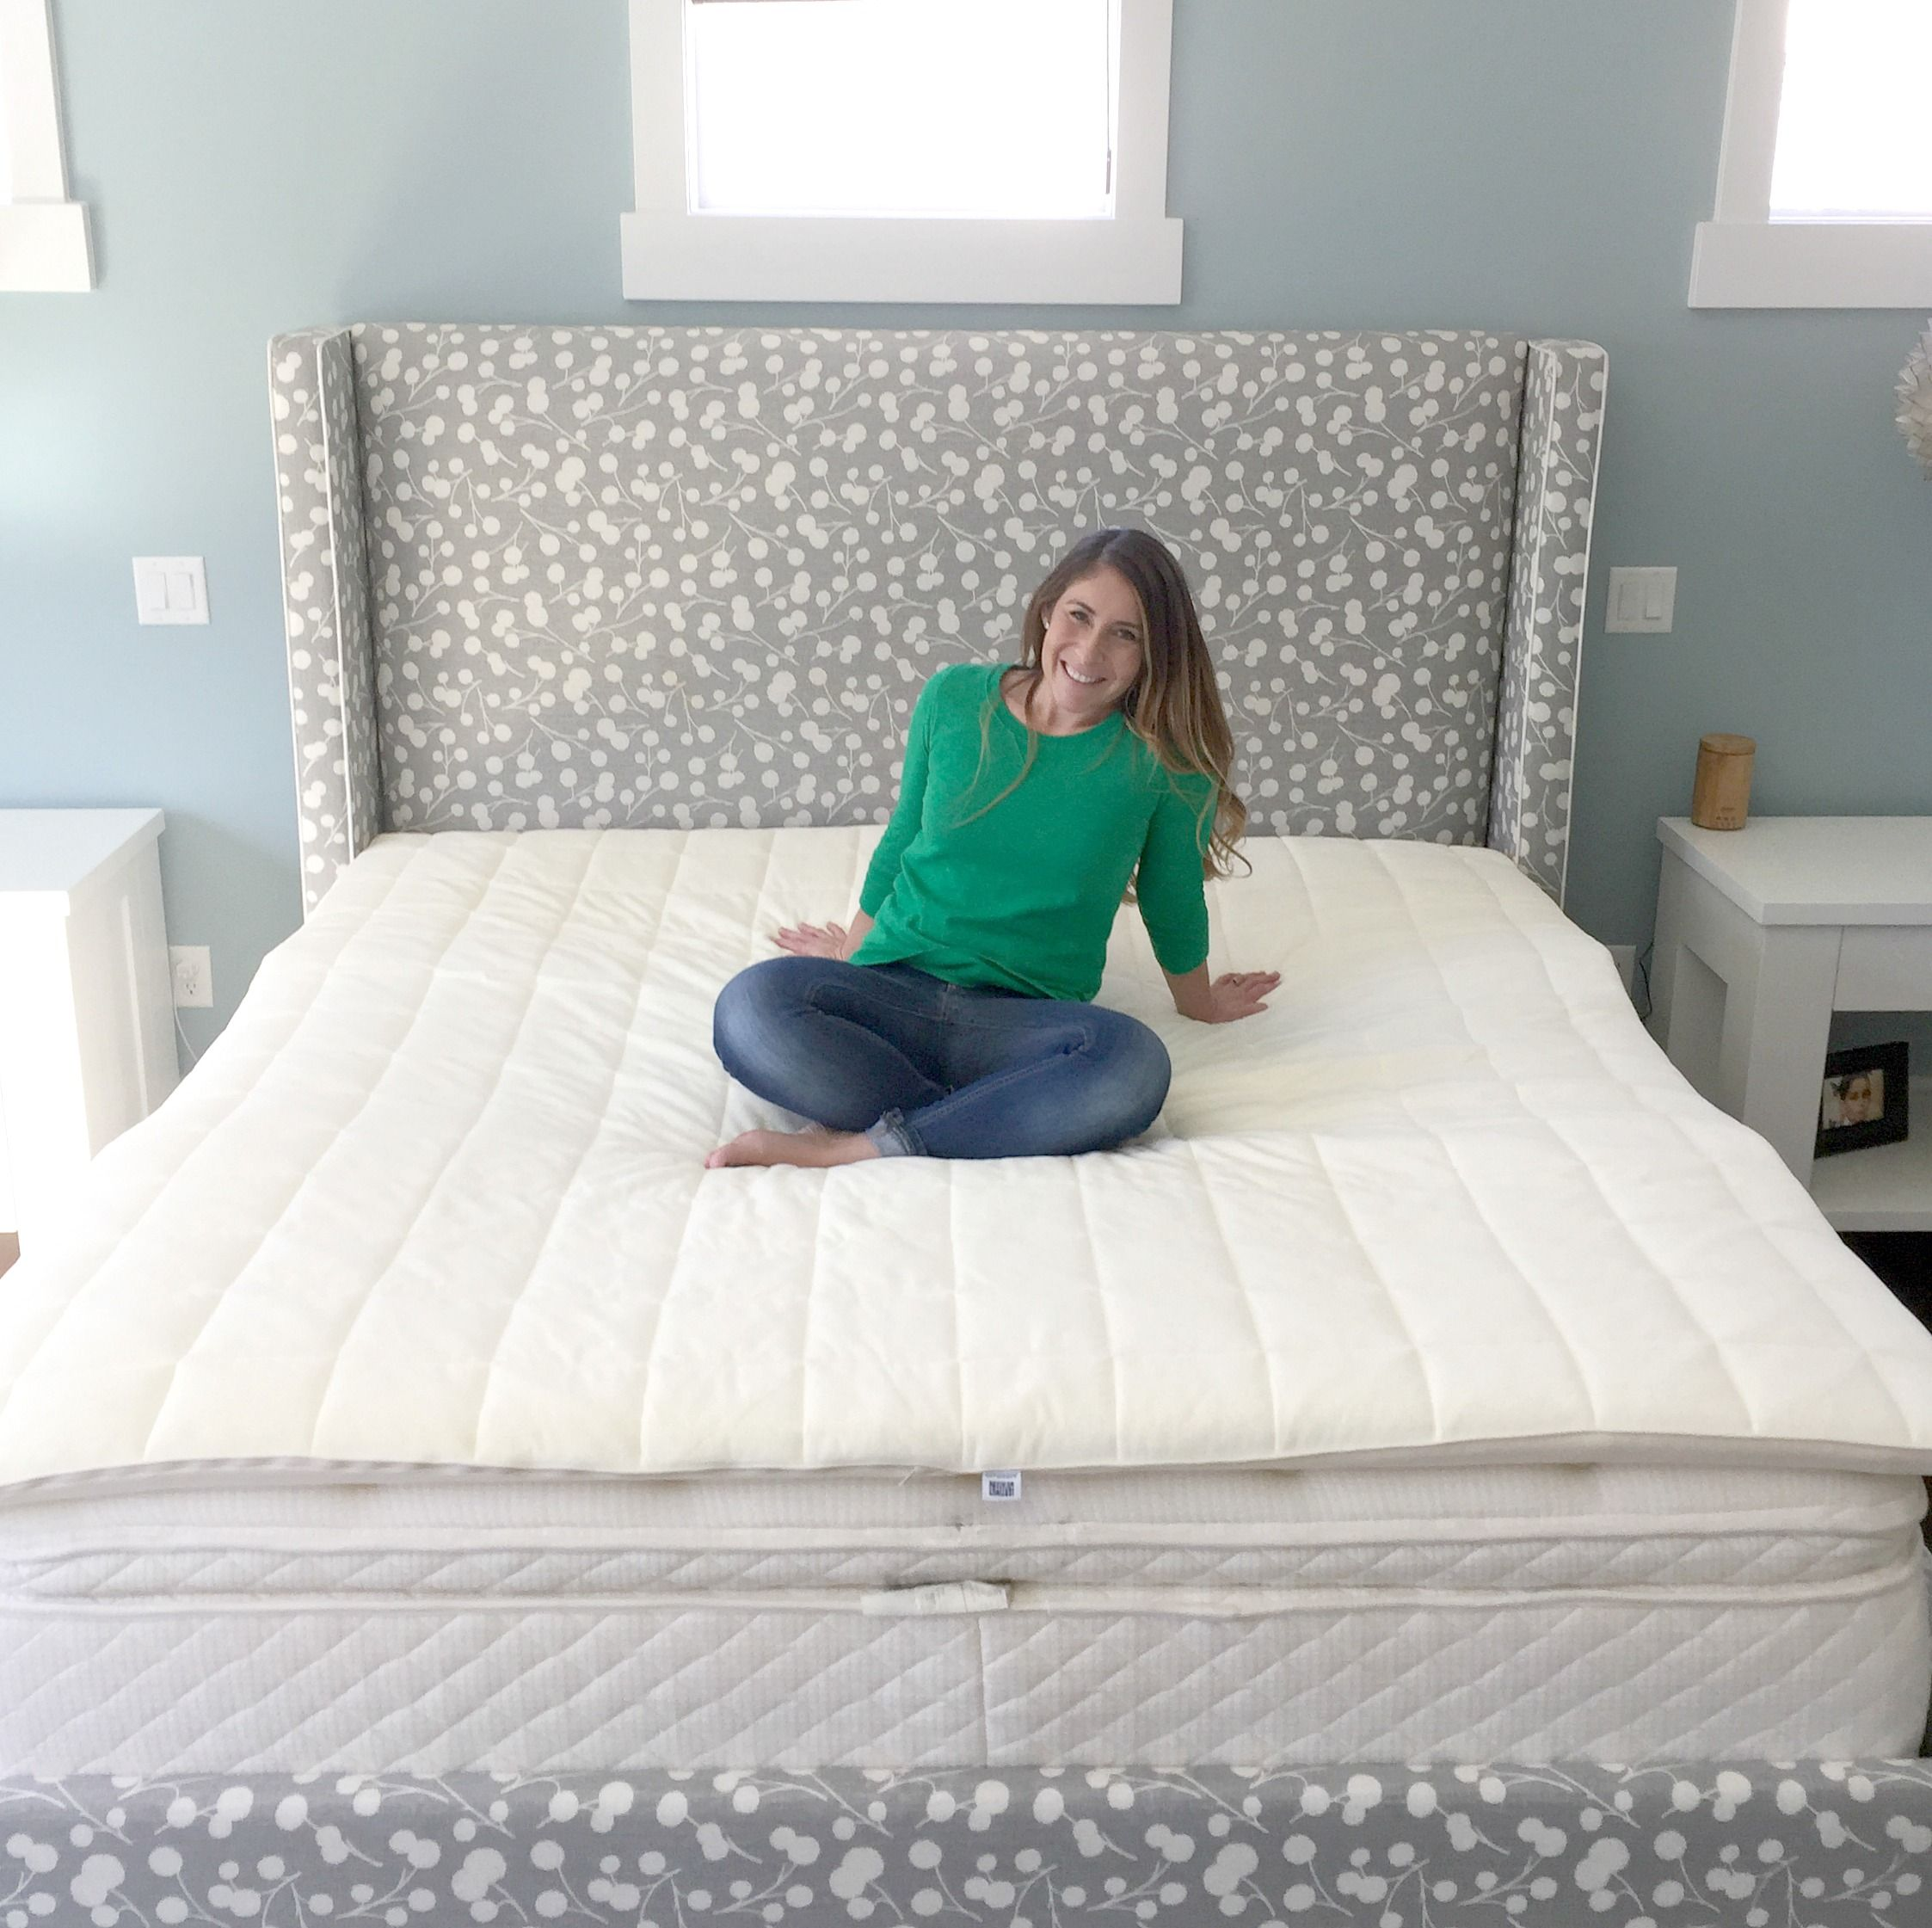 airweave Top Mattress Review Mattress, Furniture, Home decor